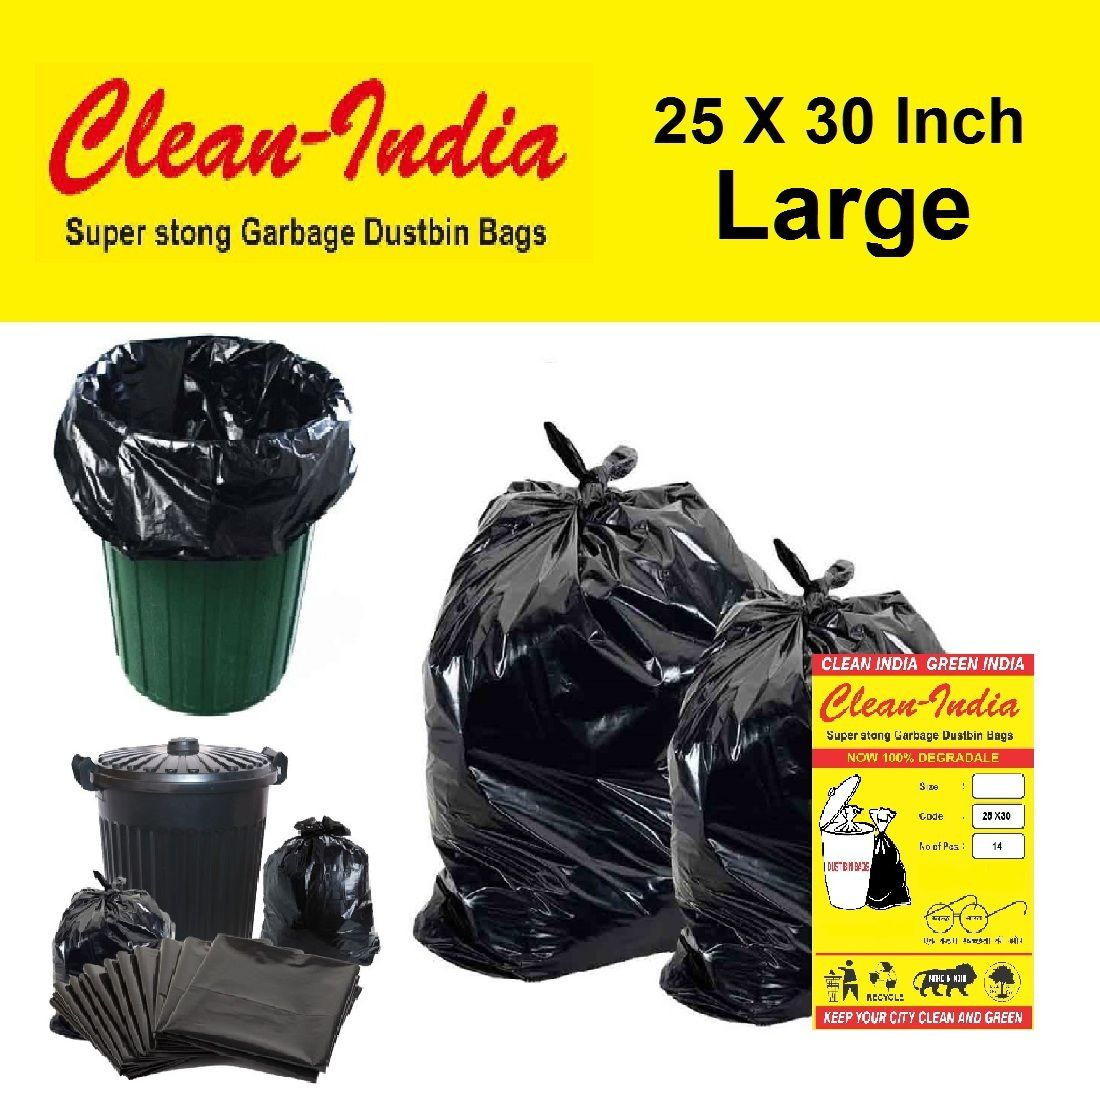 C-I Large 42 pcs - 25X30 Black Disposable Garbage Trash Waste Dustbin Bags of 63cm x 76cm | Pack of 3 X 14 pcs= total 42 pcs